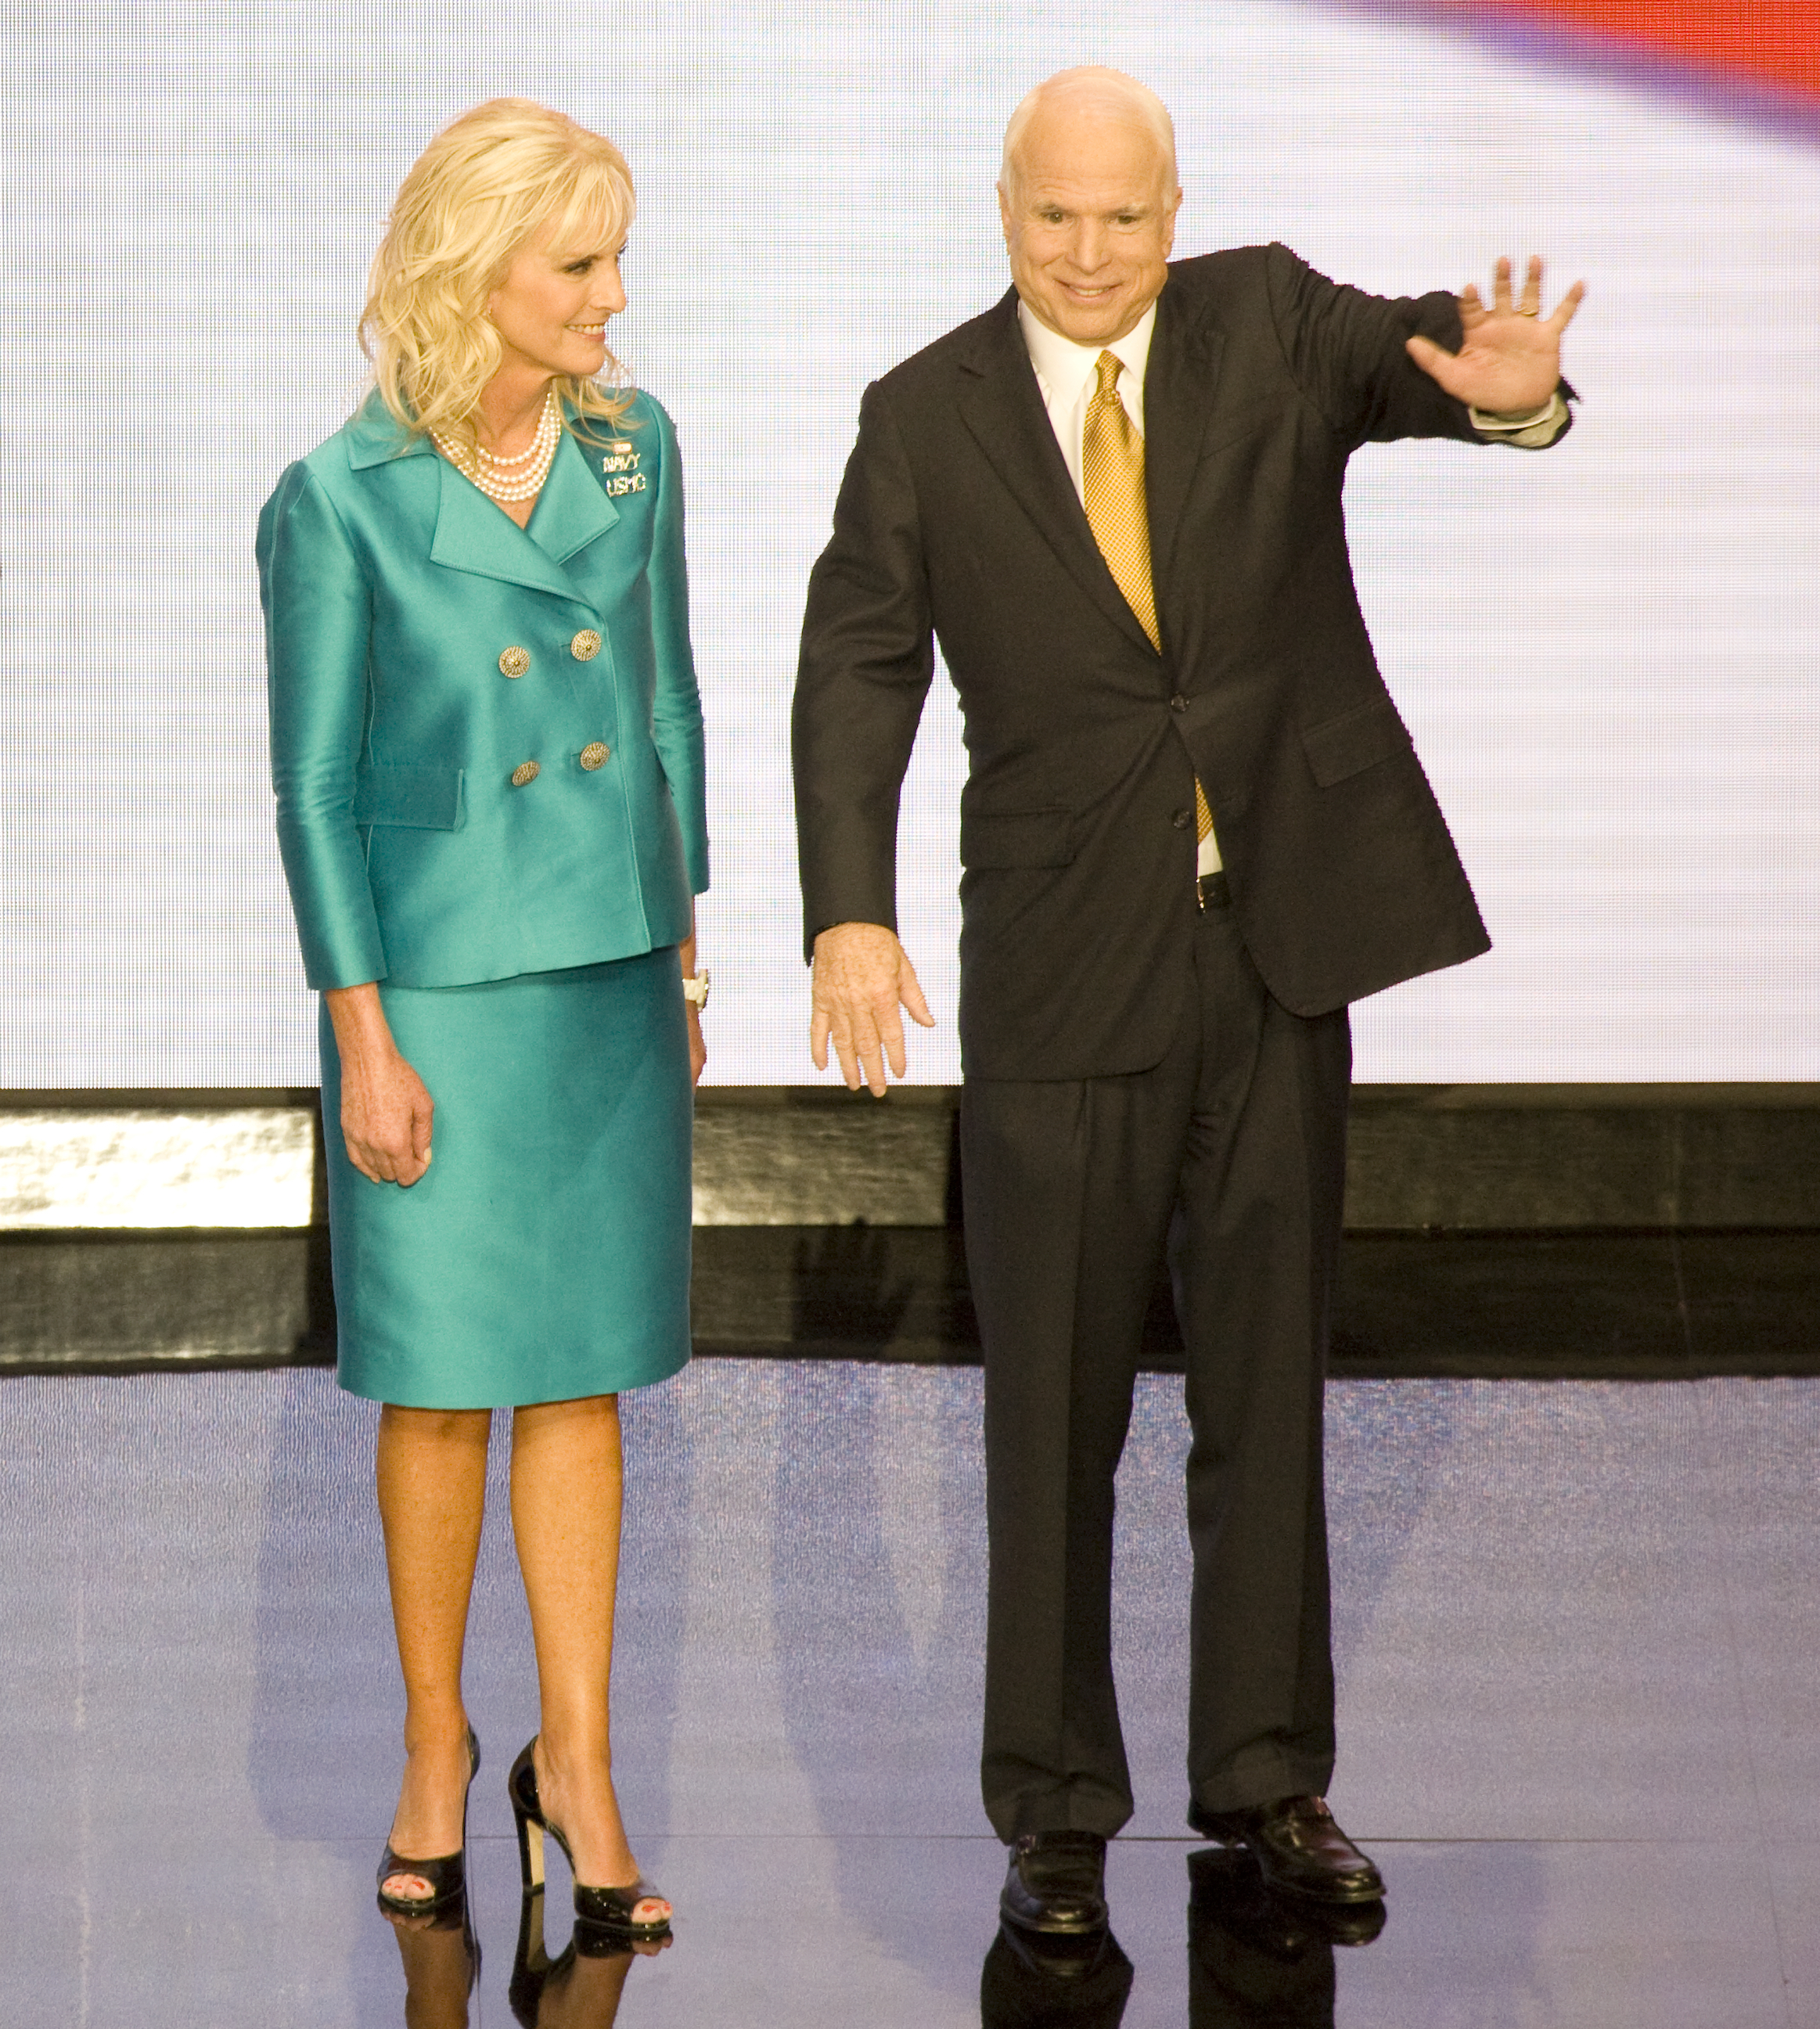 Cindy Hensley Mccain: File:John And Cindy McCain On Stage, St. Paul, Minnesota